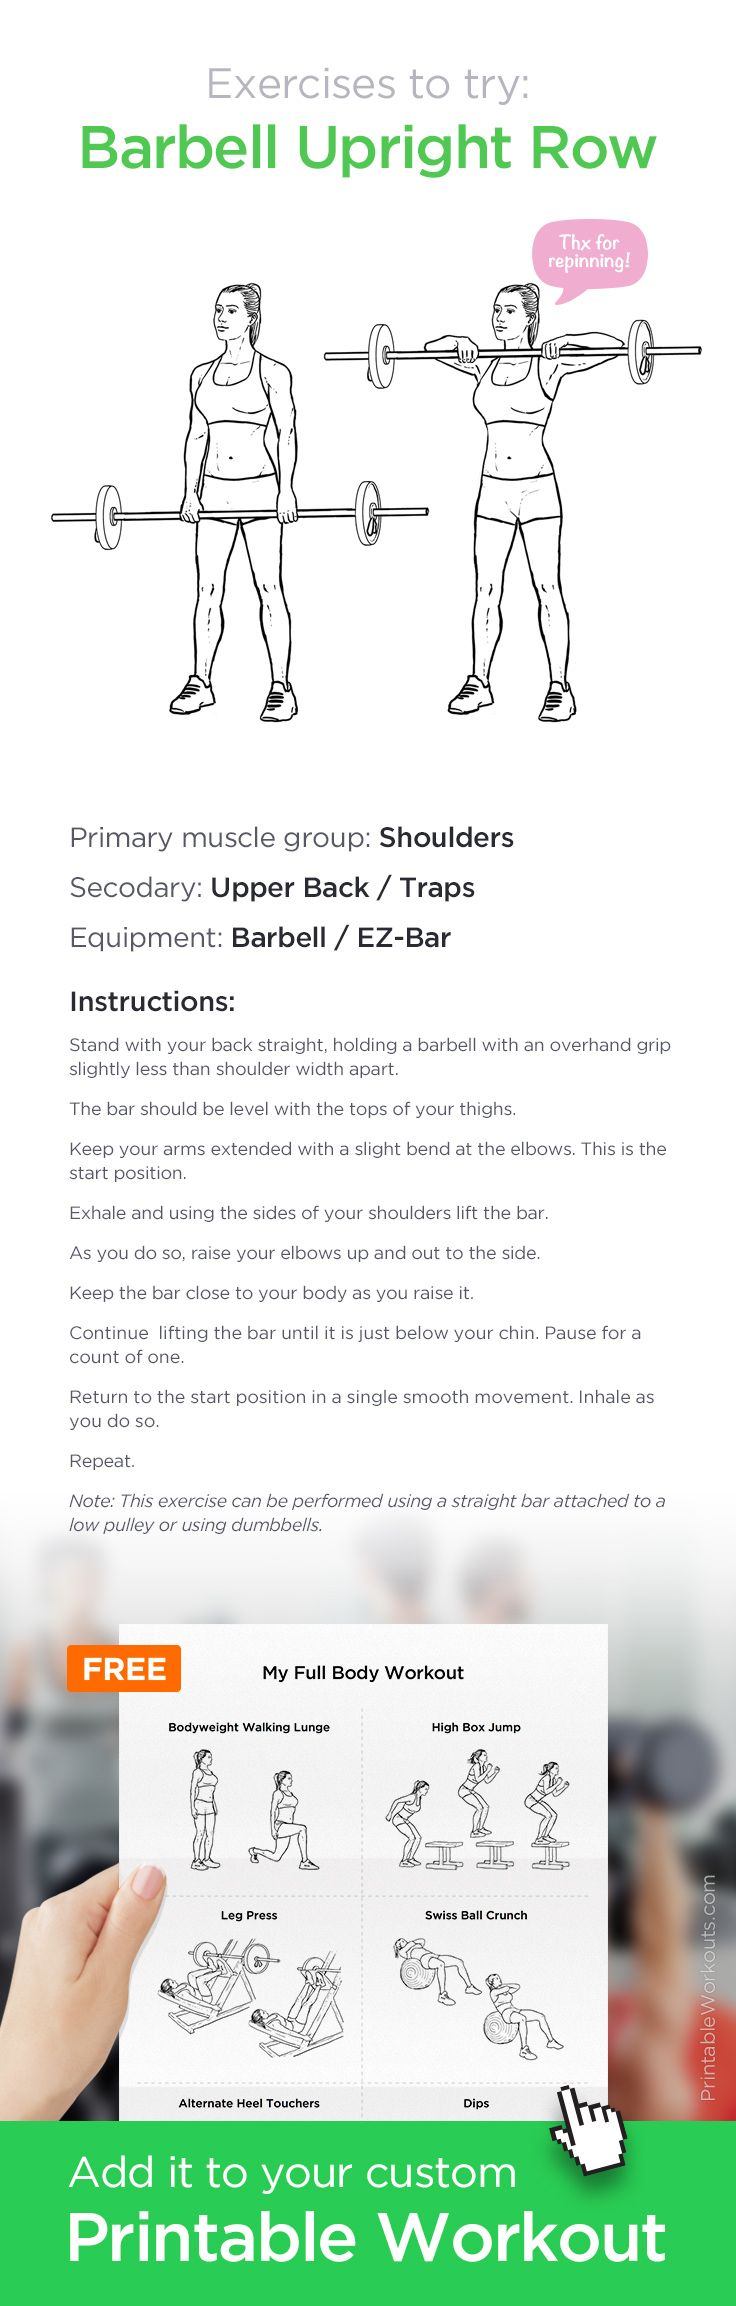 Barbell Upright Row – work your shoulders and upper back with this simple barbell exercise! ✸ Add it to your custom printable workout at http://WorkoutLabs.com!